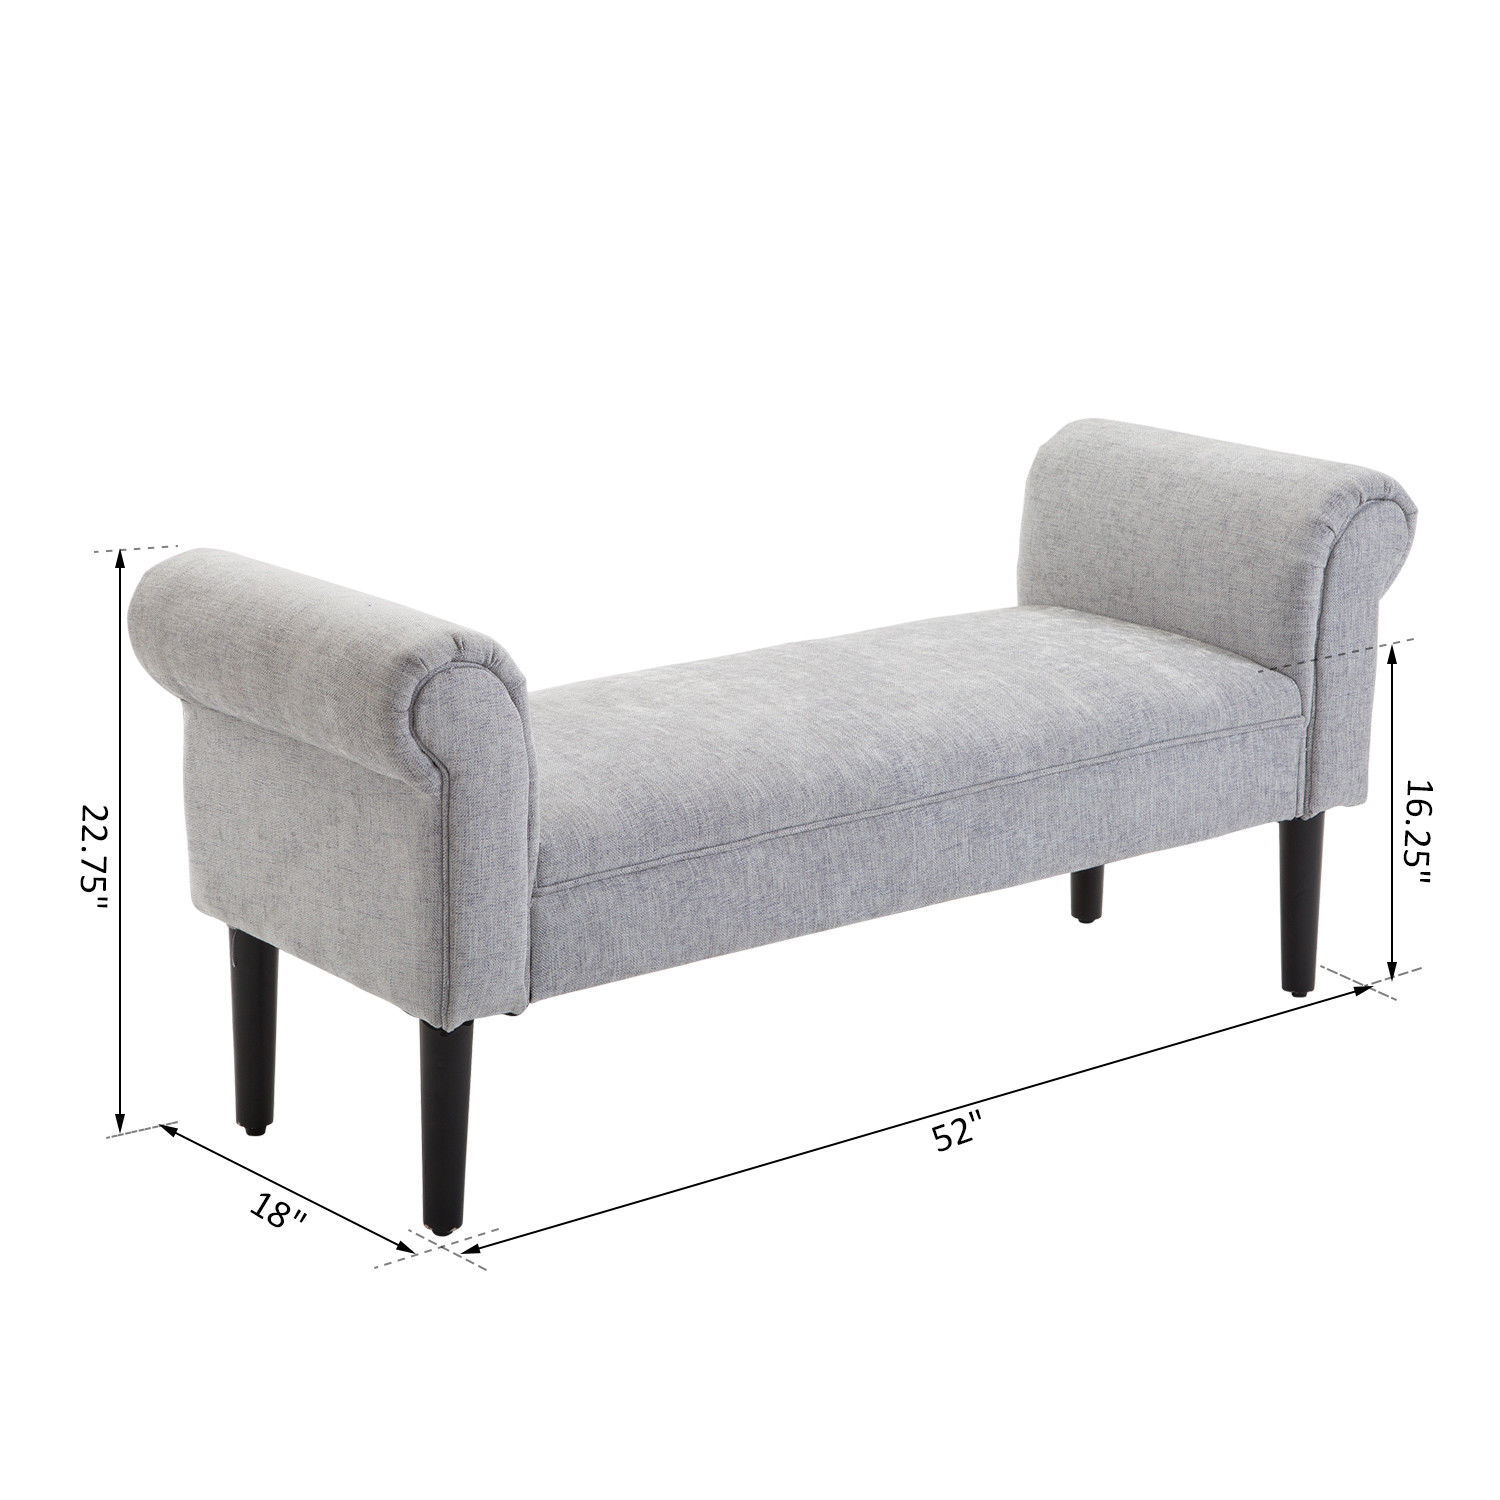 52 Modern Rolled Arm Bench Bed End Ottoman Sofa Seat